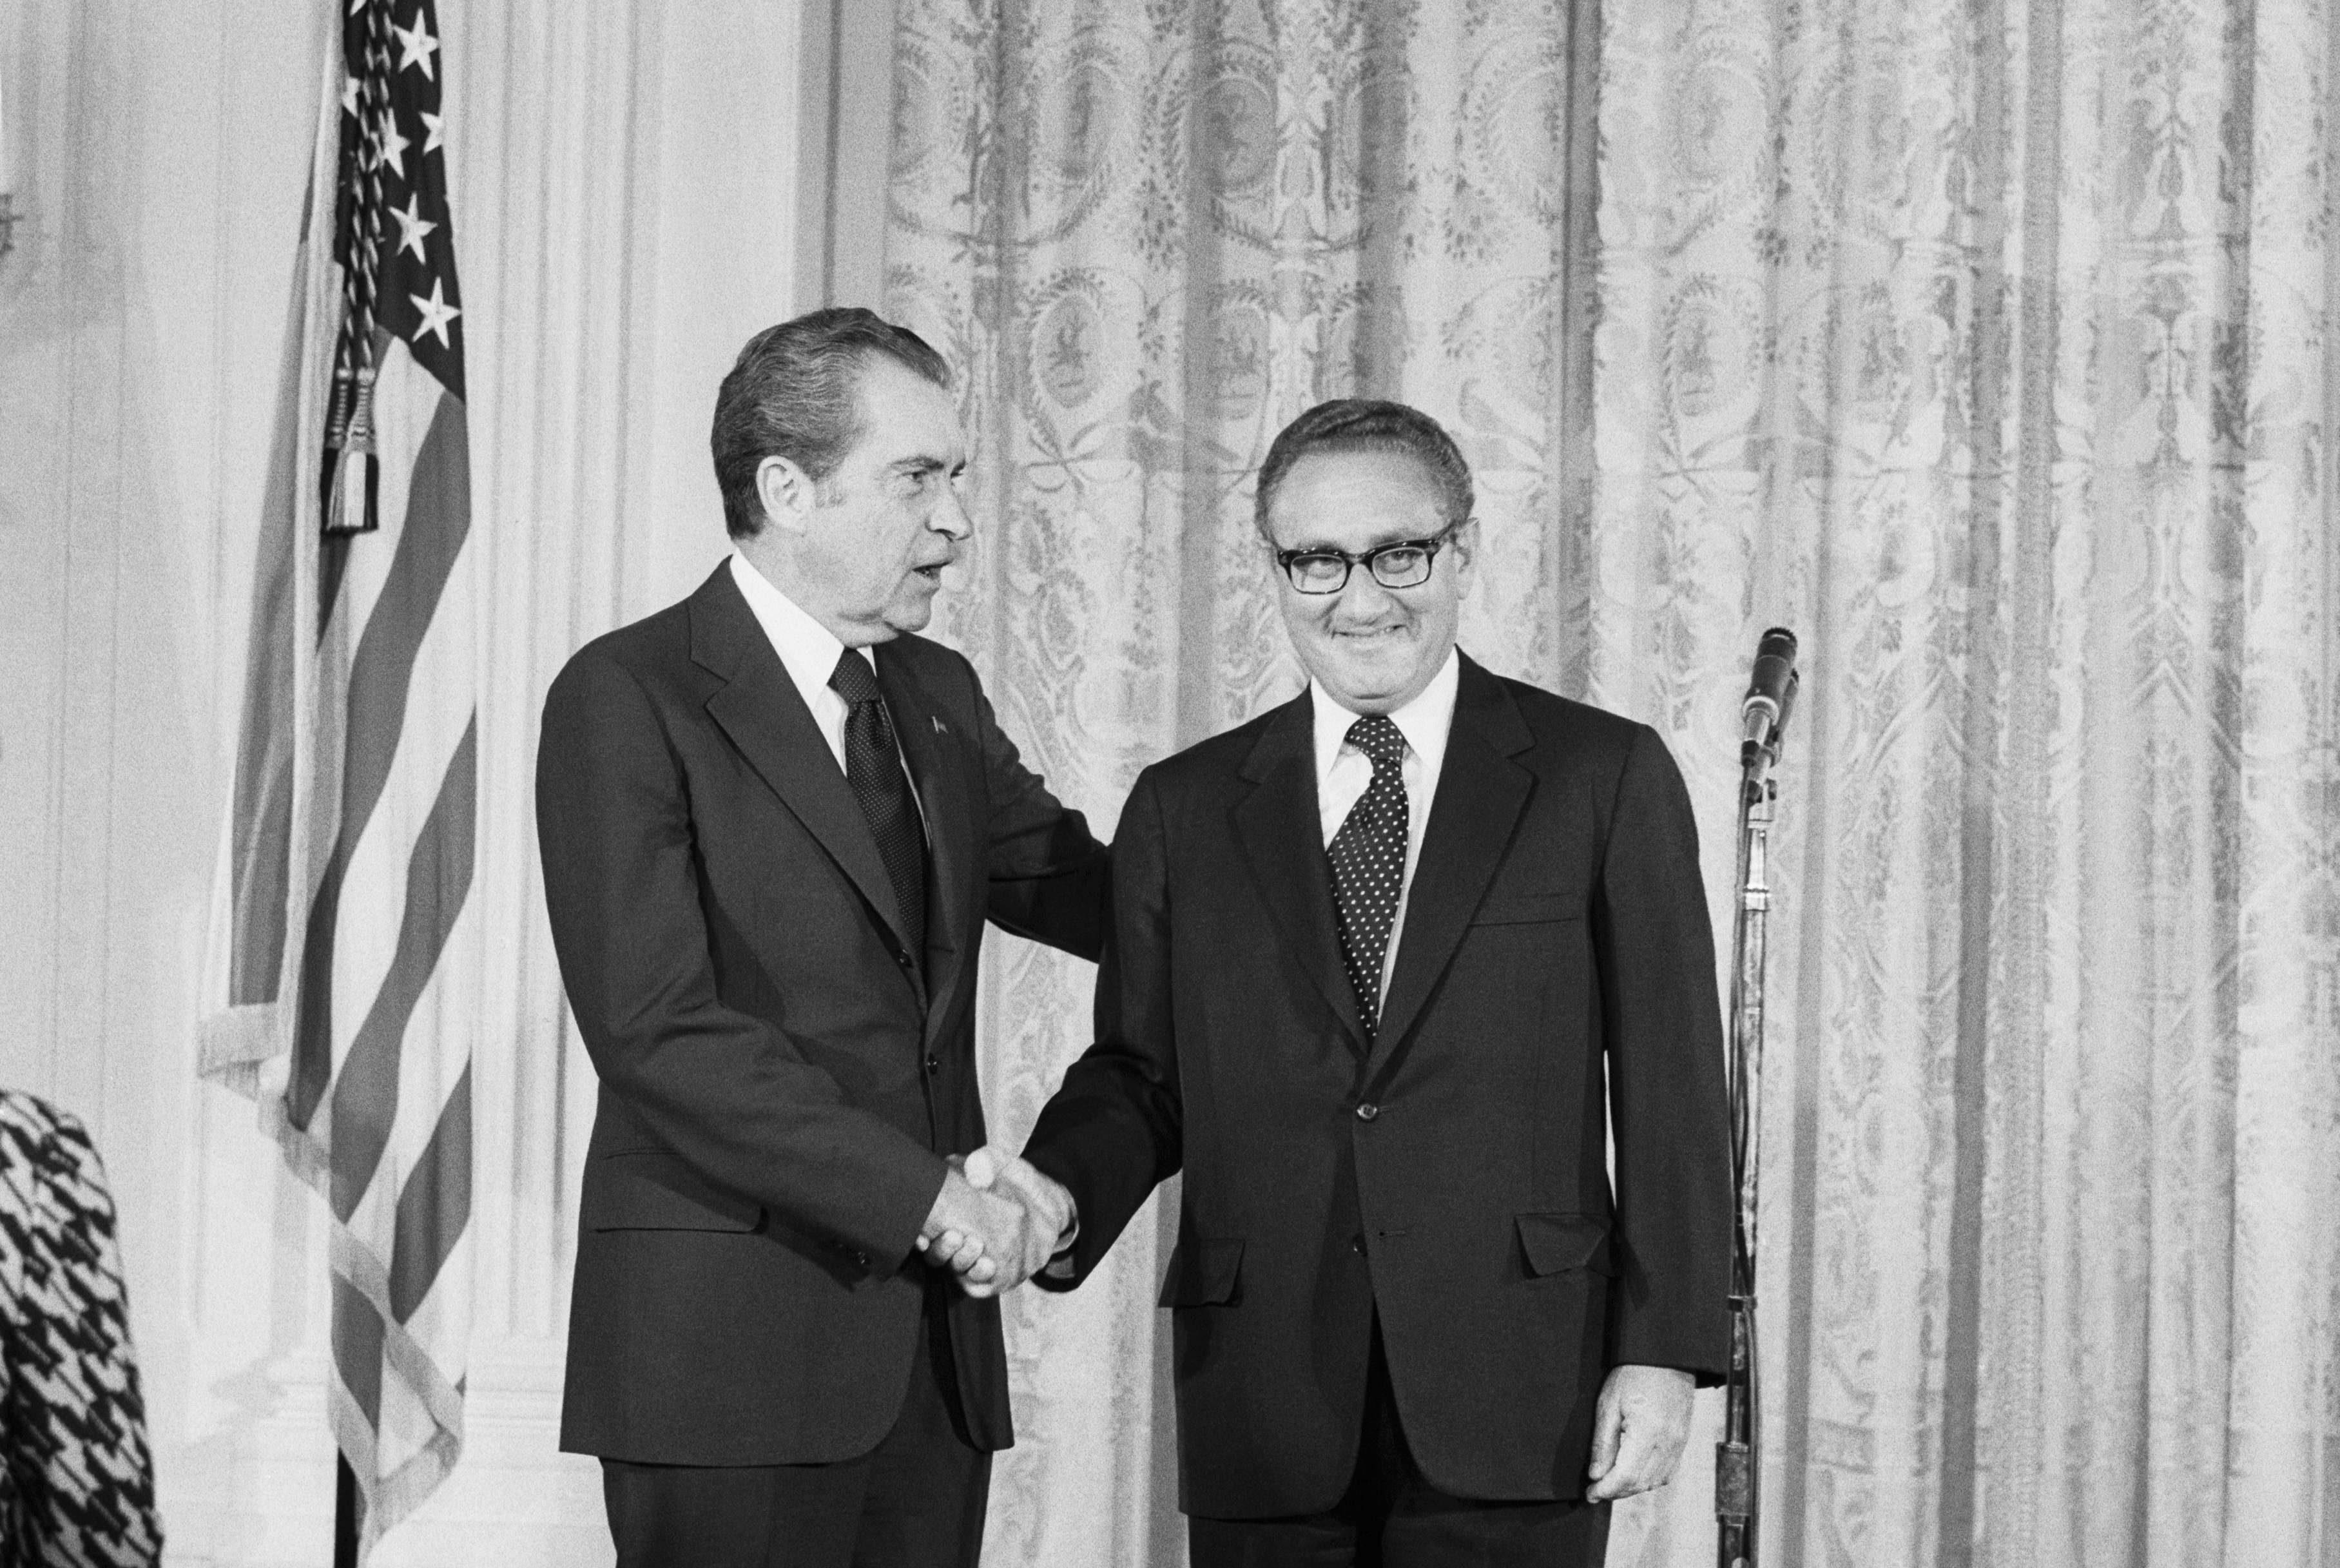 Pres. Nixon congratulates Henry Kissinger after he was sworn in as Secretary of State in a ceremony in the East Room of the White House.